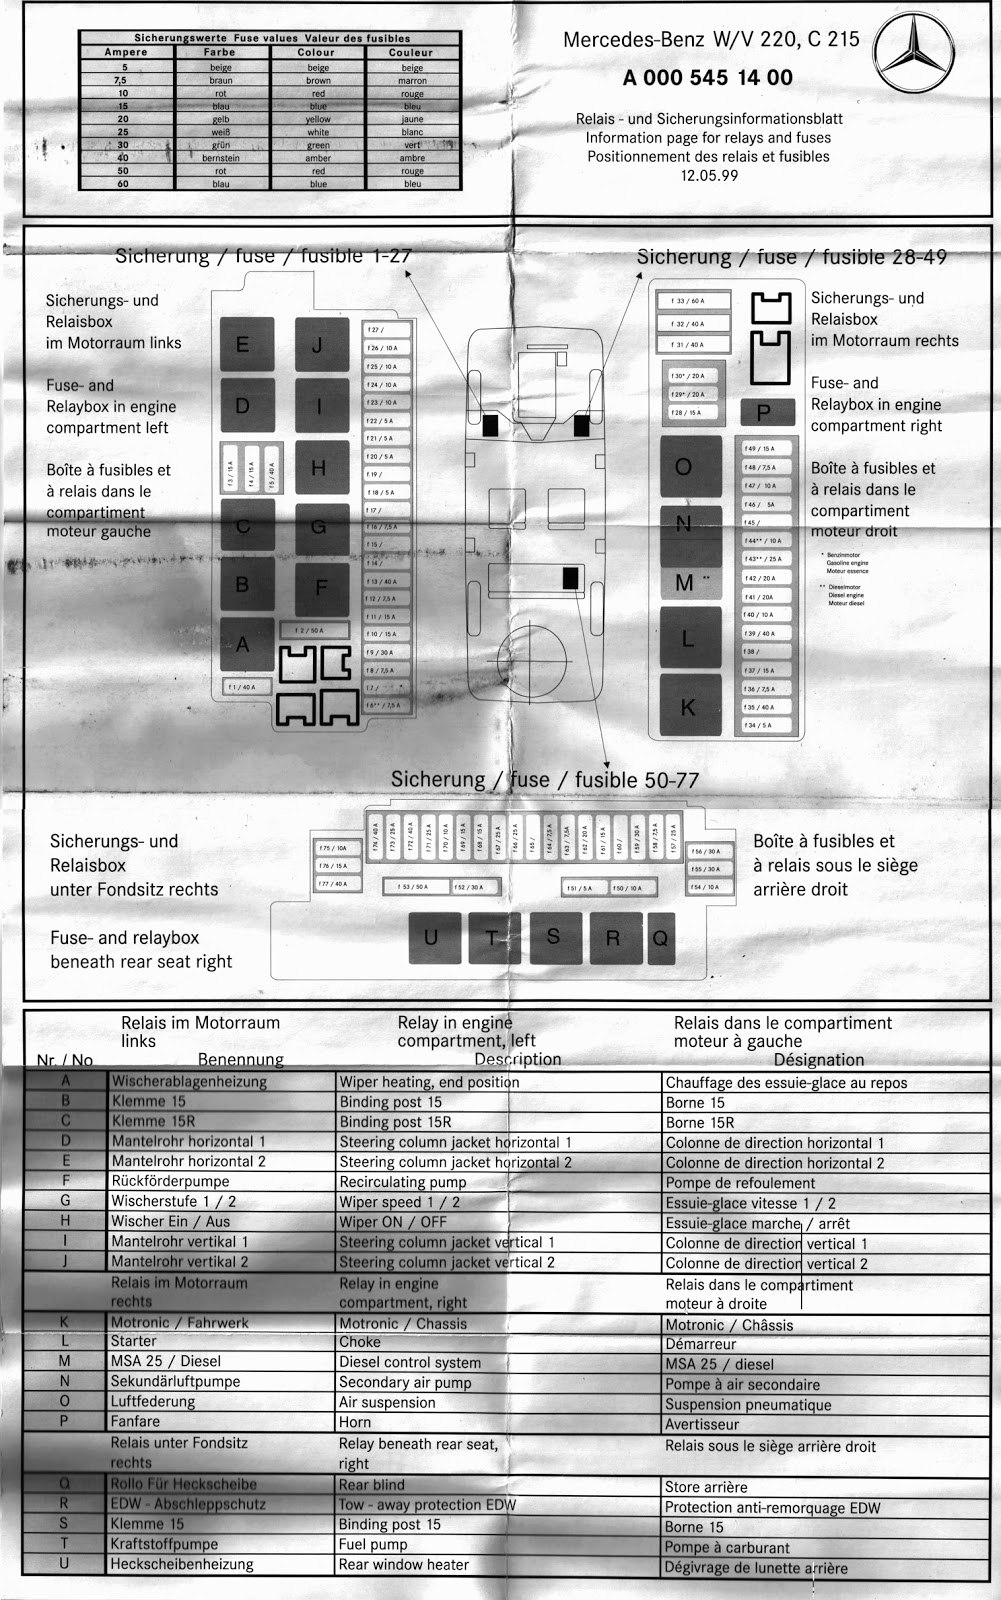 mercedes benz 2003 c240 fuse box 13 sandybloom nl \u2022c240 fuse box wiring diagram rh 40 gensignalen nl 2003 mercedes benz c240 fuse box location 2003 mercedes benz c240 fuse box layout